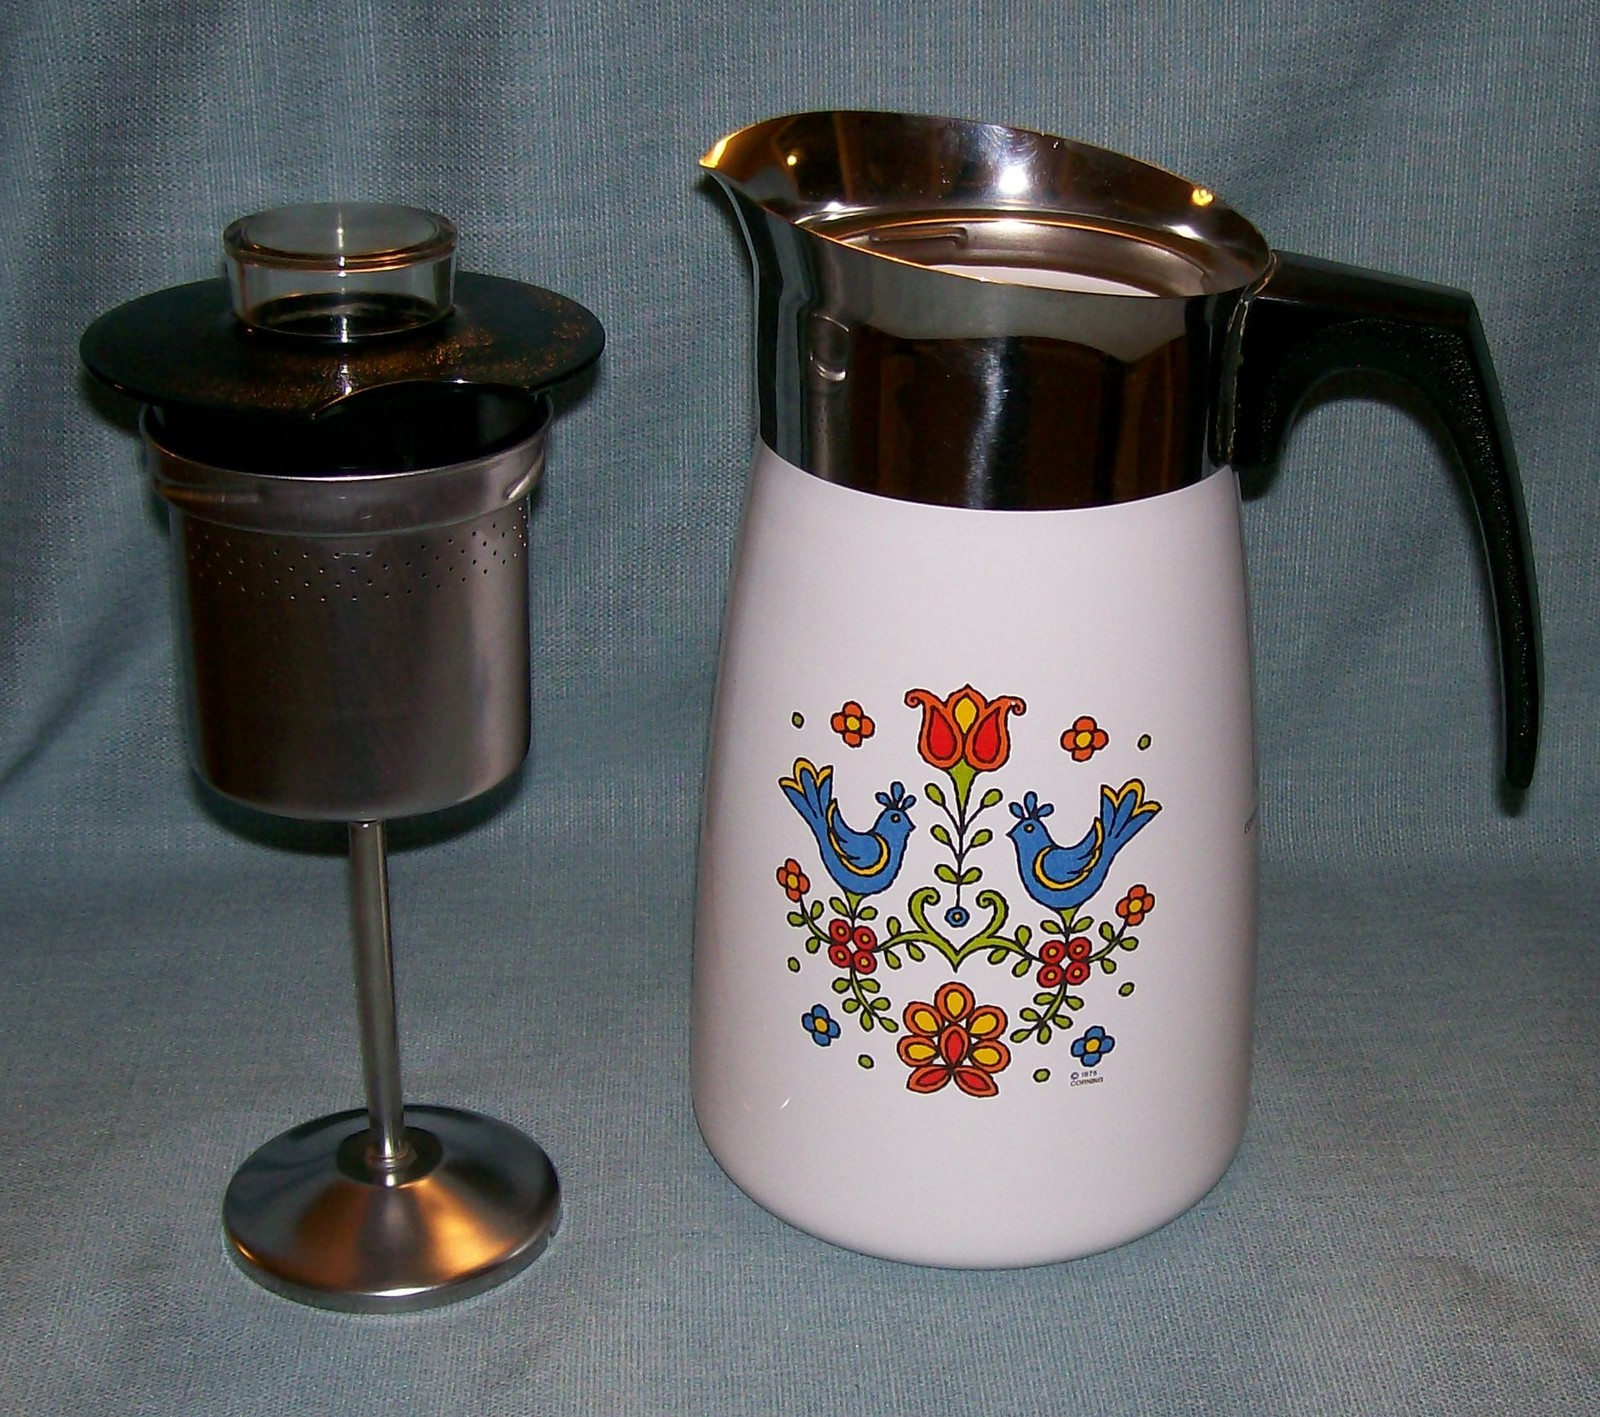 Vtg Corning COUNTRY FESTIVAL Friendship Stove Top 10 Cup Percolator P149 Birds image 14